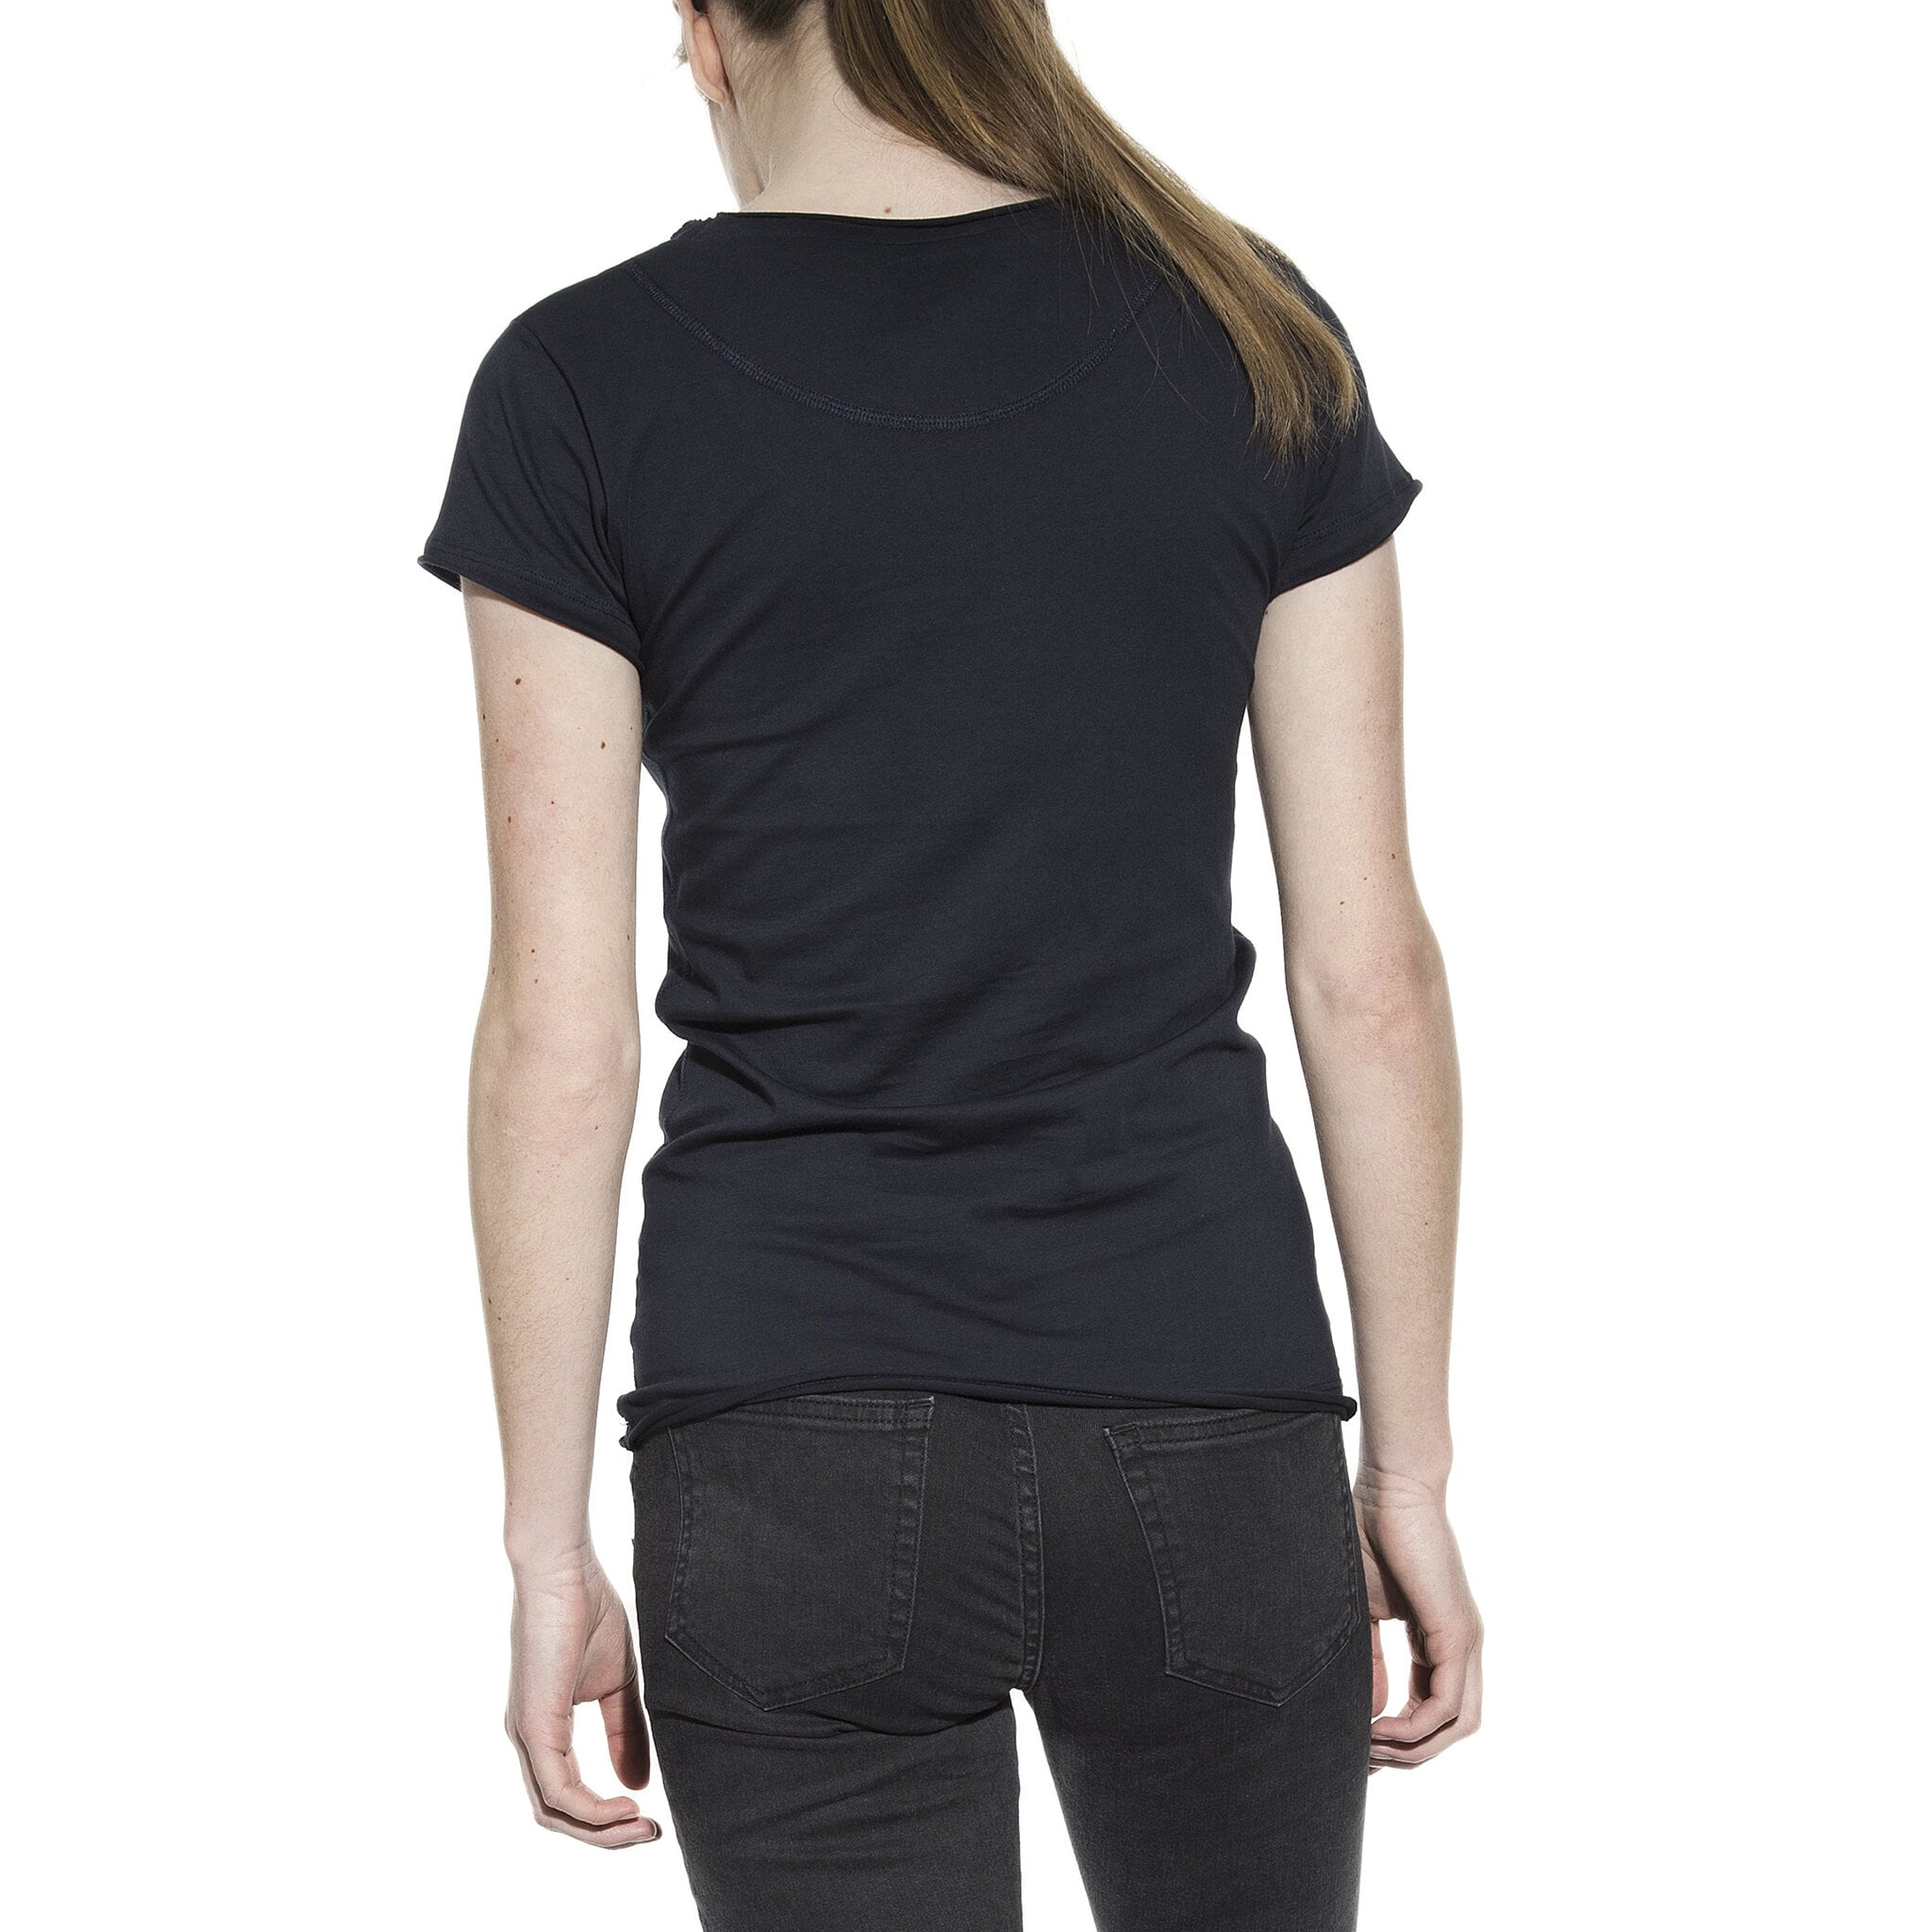 603104_Woman_Crew-Neck_relaxed_dark-navy_3